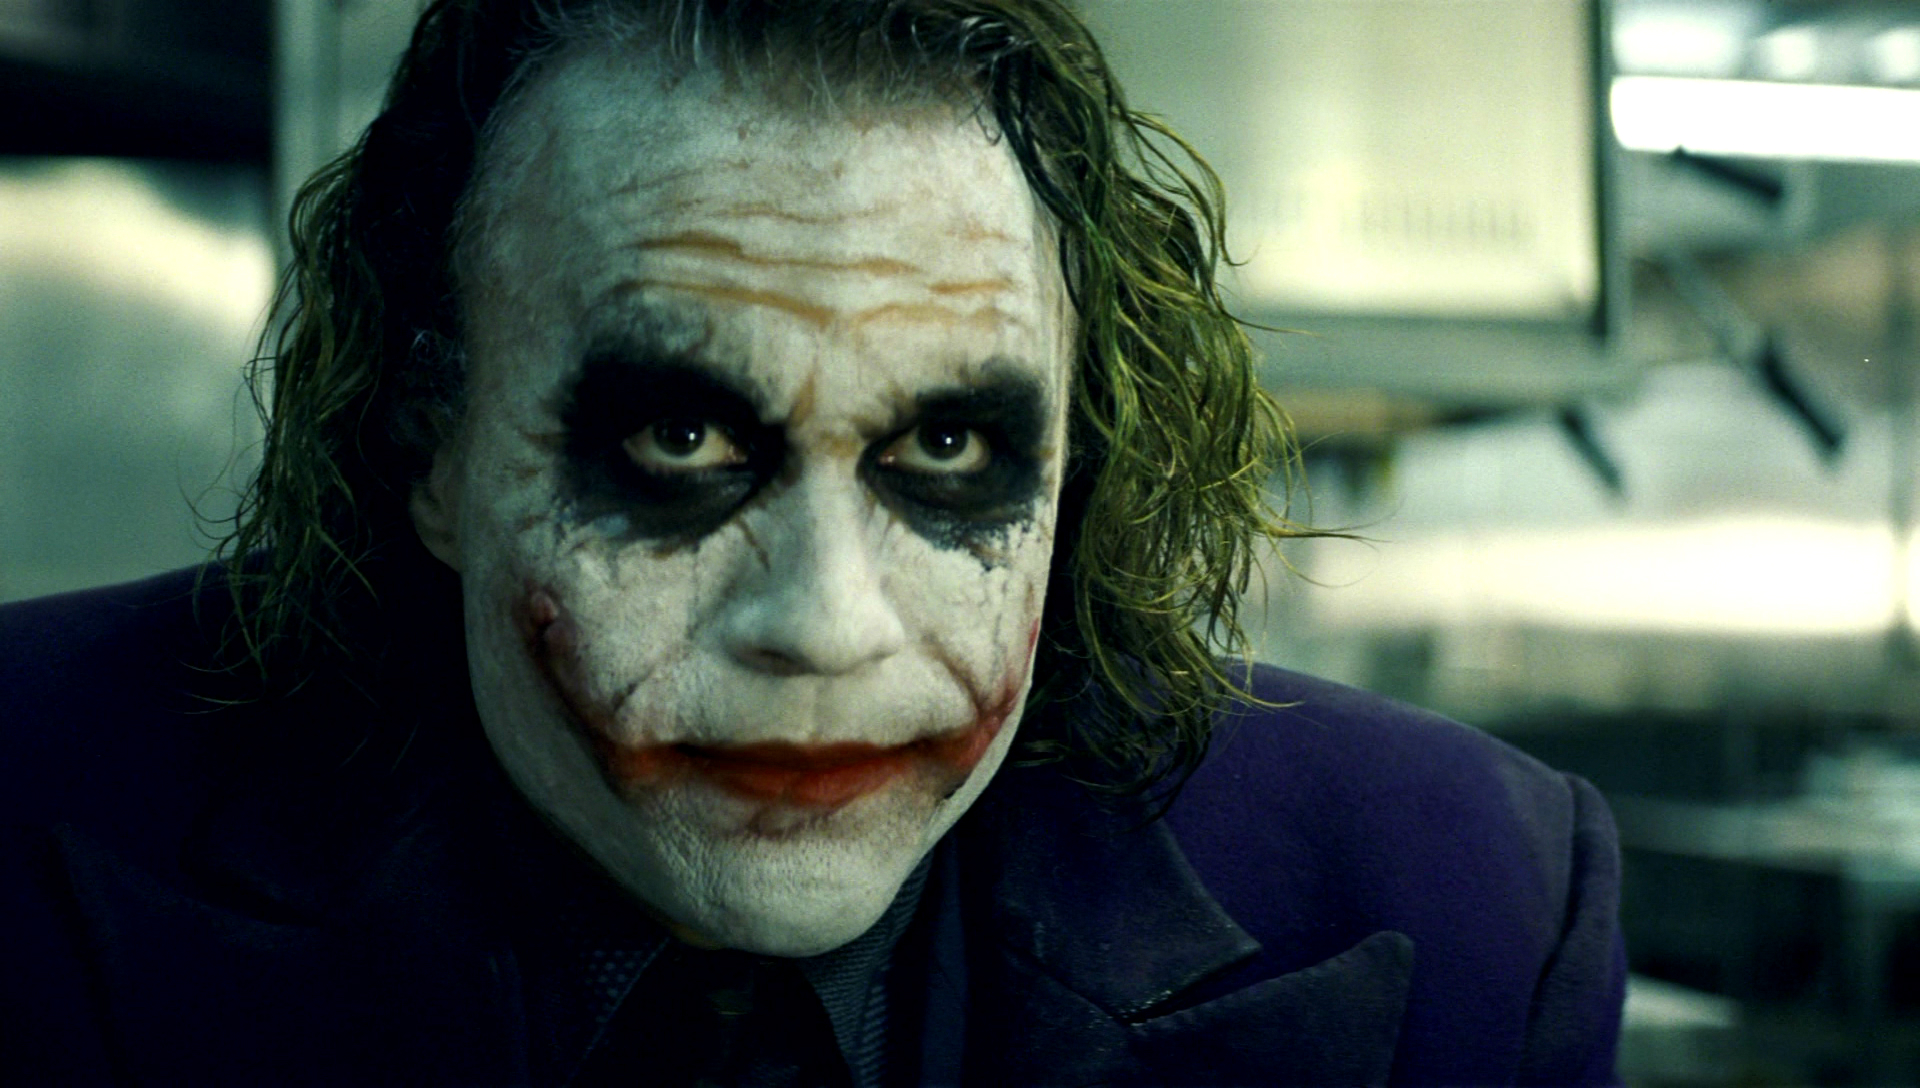 joker-who-could-possibly-be-the-joker-after-heath-ledger